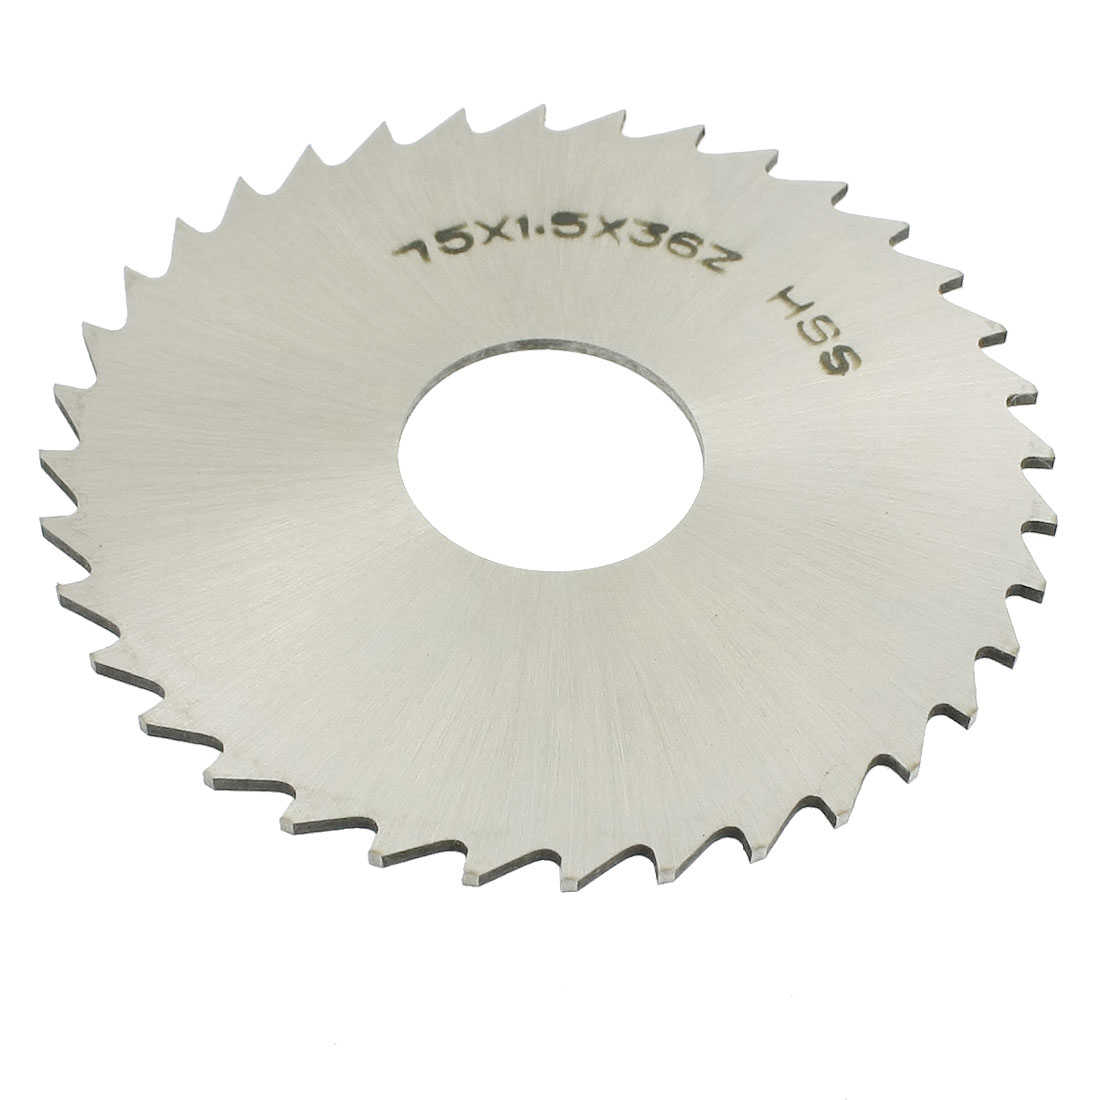 Unique Bargains Slitting Slotting Saw Mill Cutter Disc HSS 75mm x 1.5mm x 22mm 36 Teeth